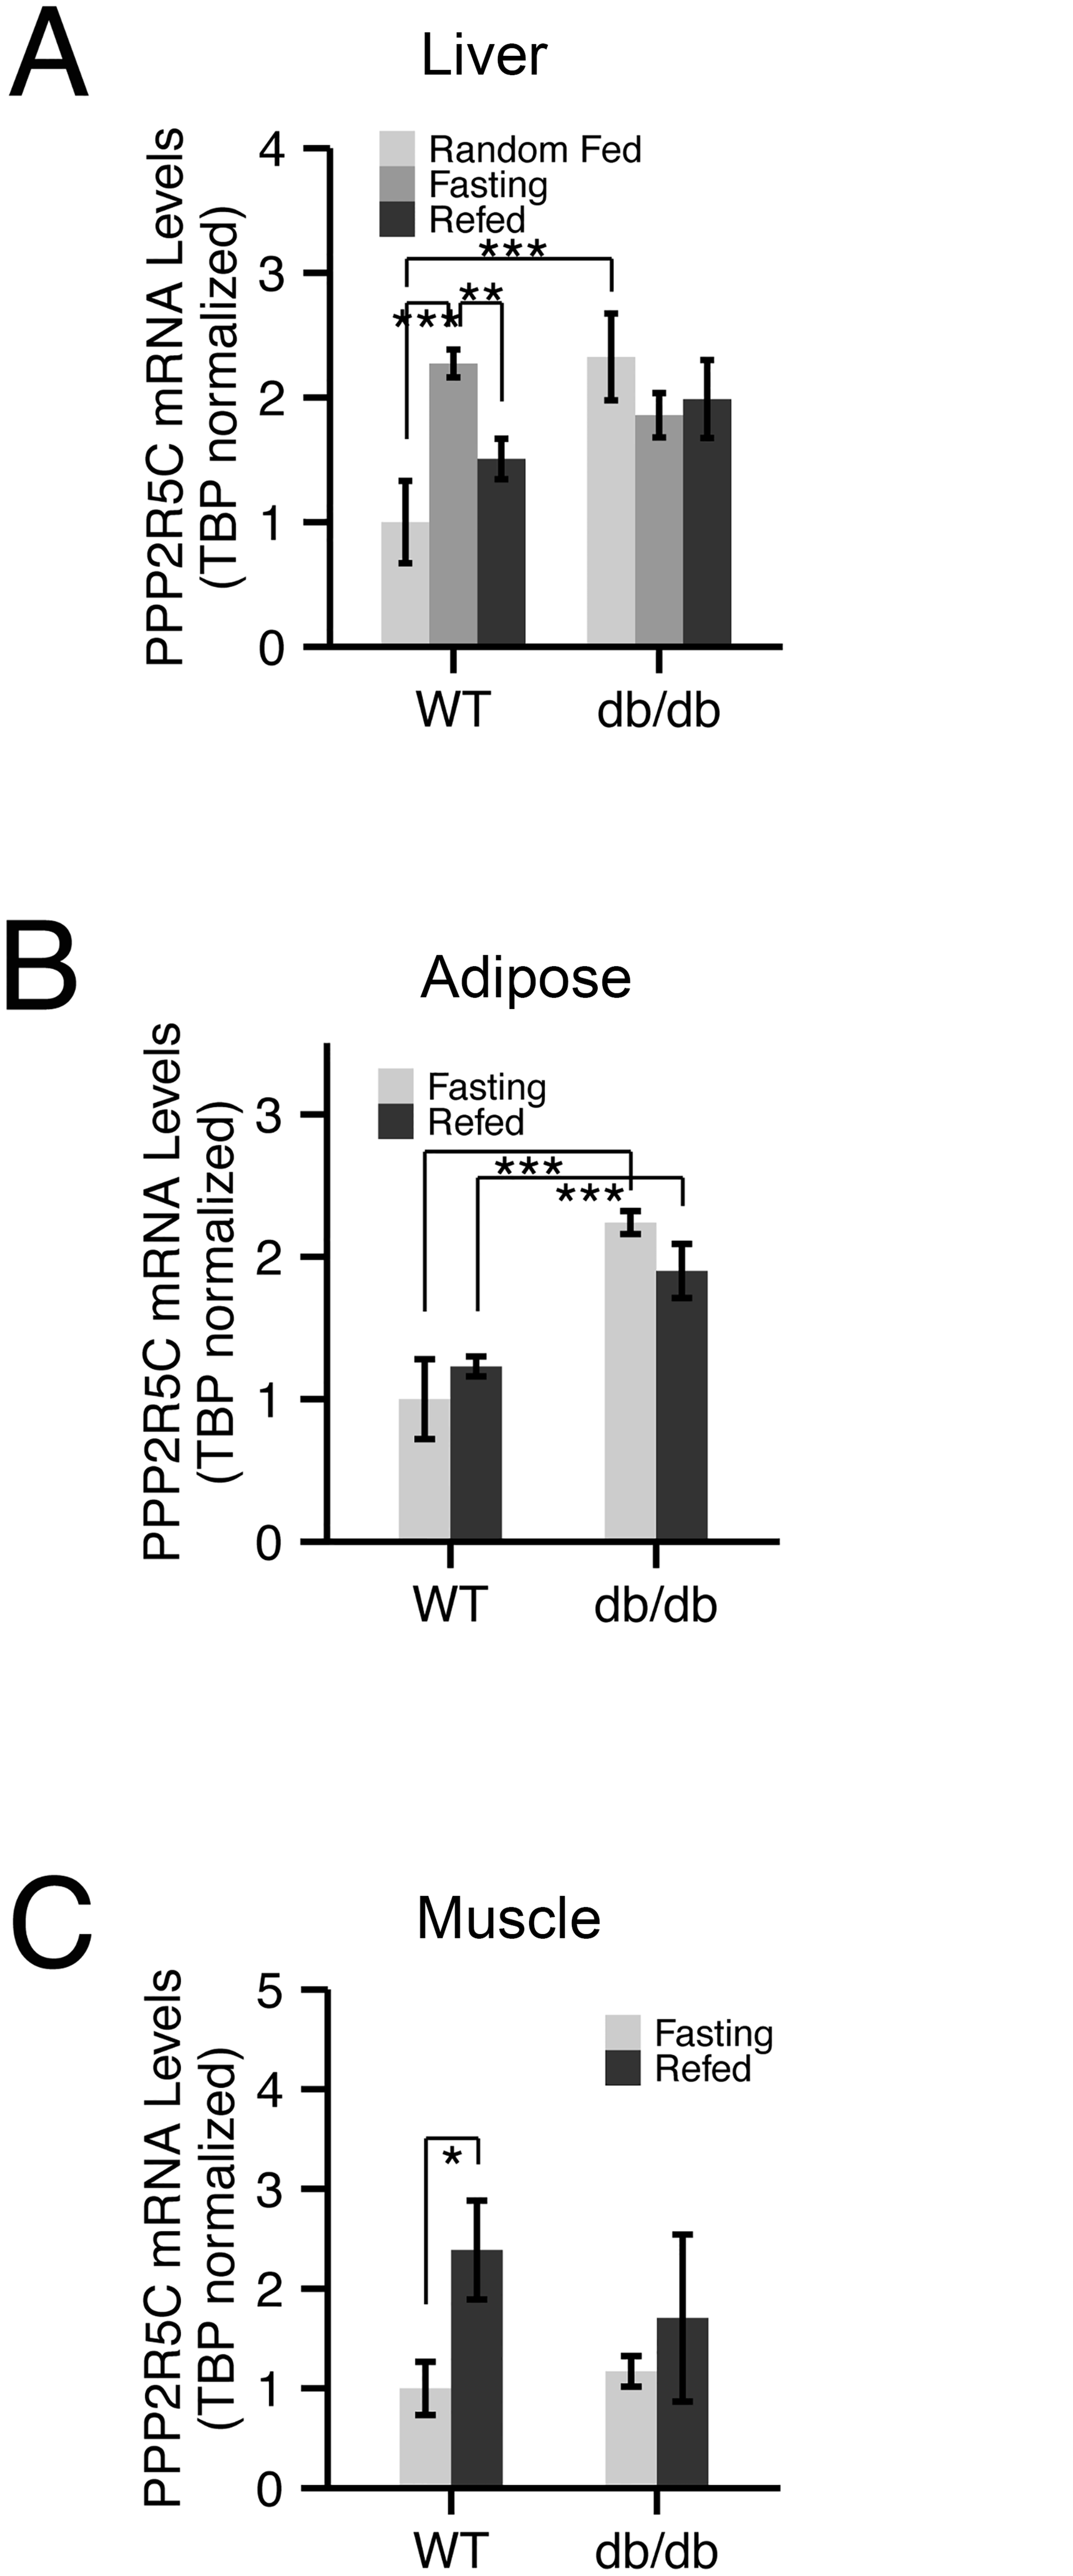 Expression of PPP2R5C is nutritionally regulated in metabolically relevant tissues.